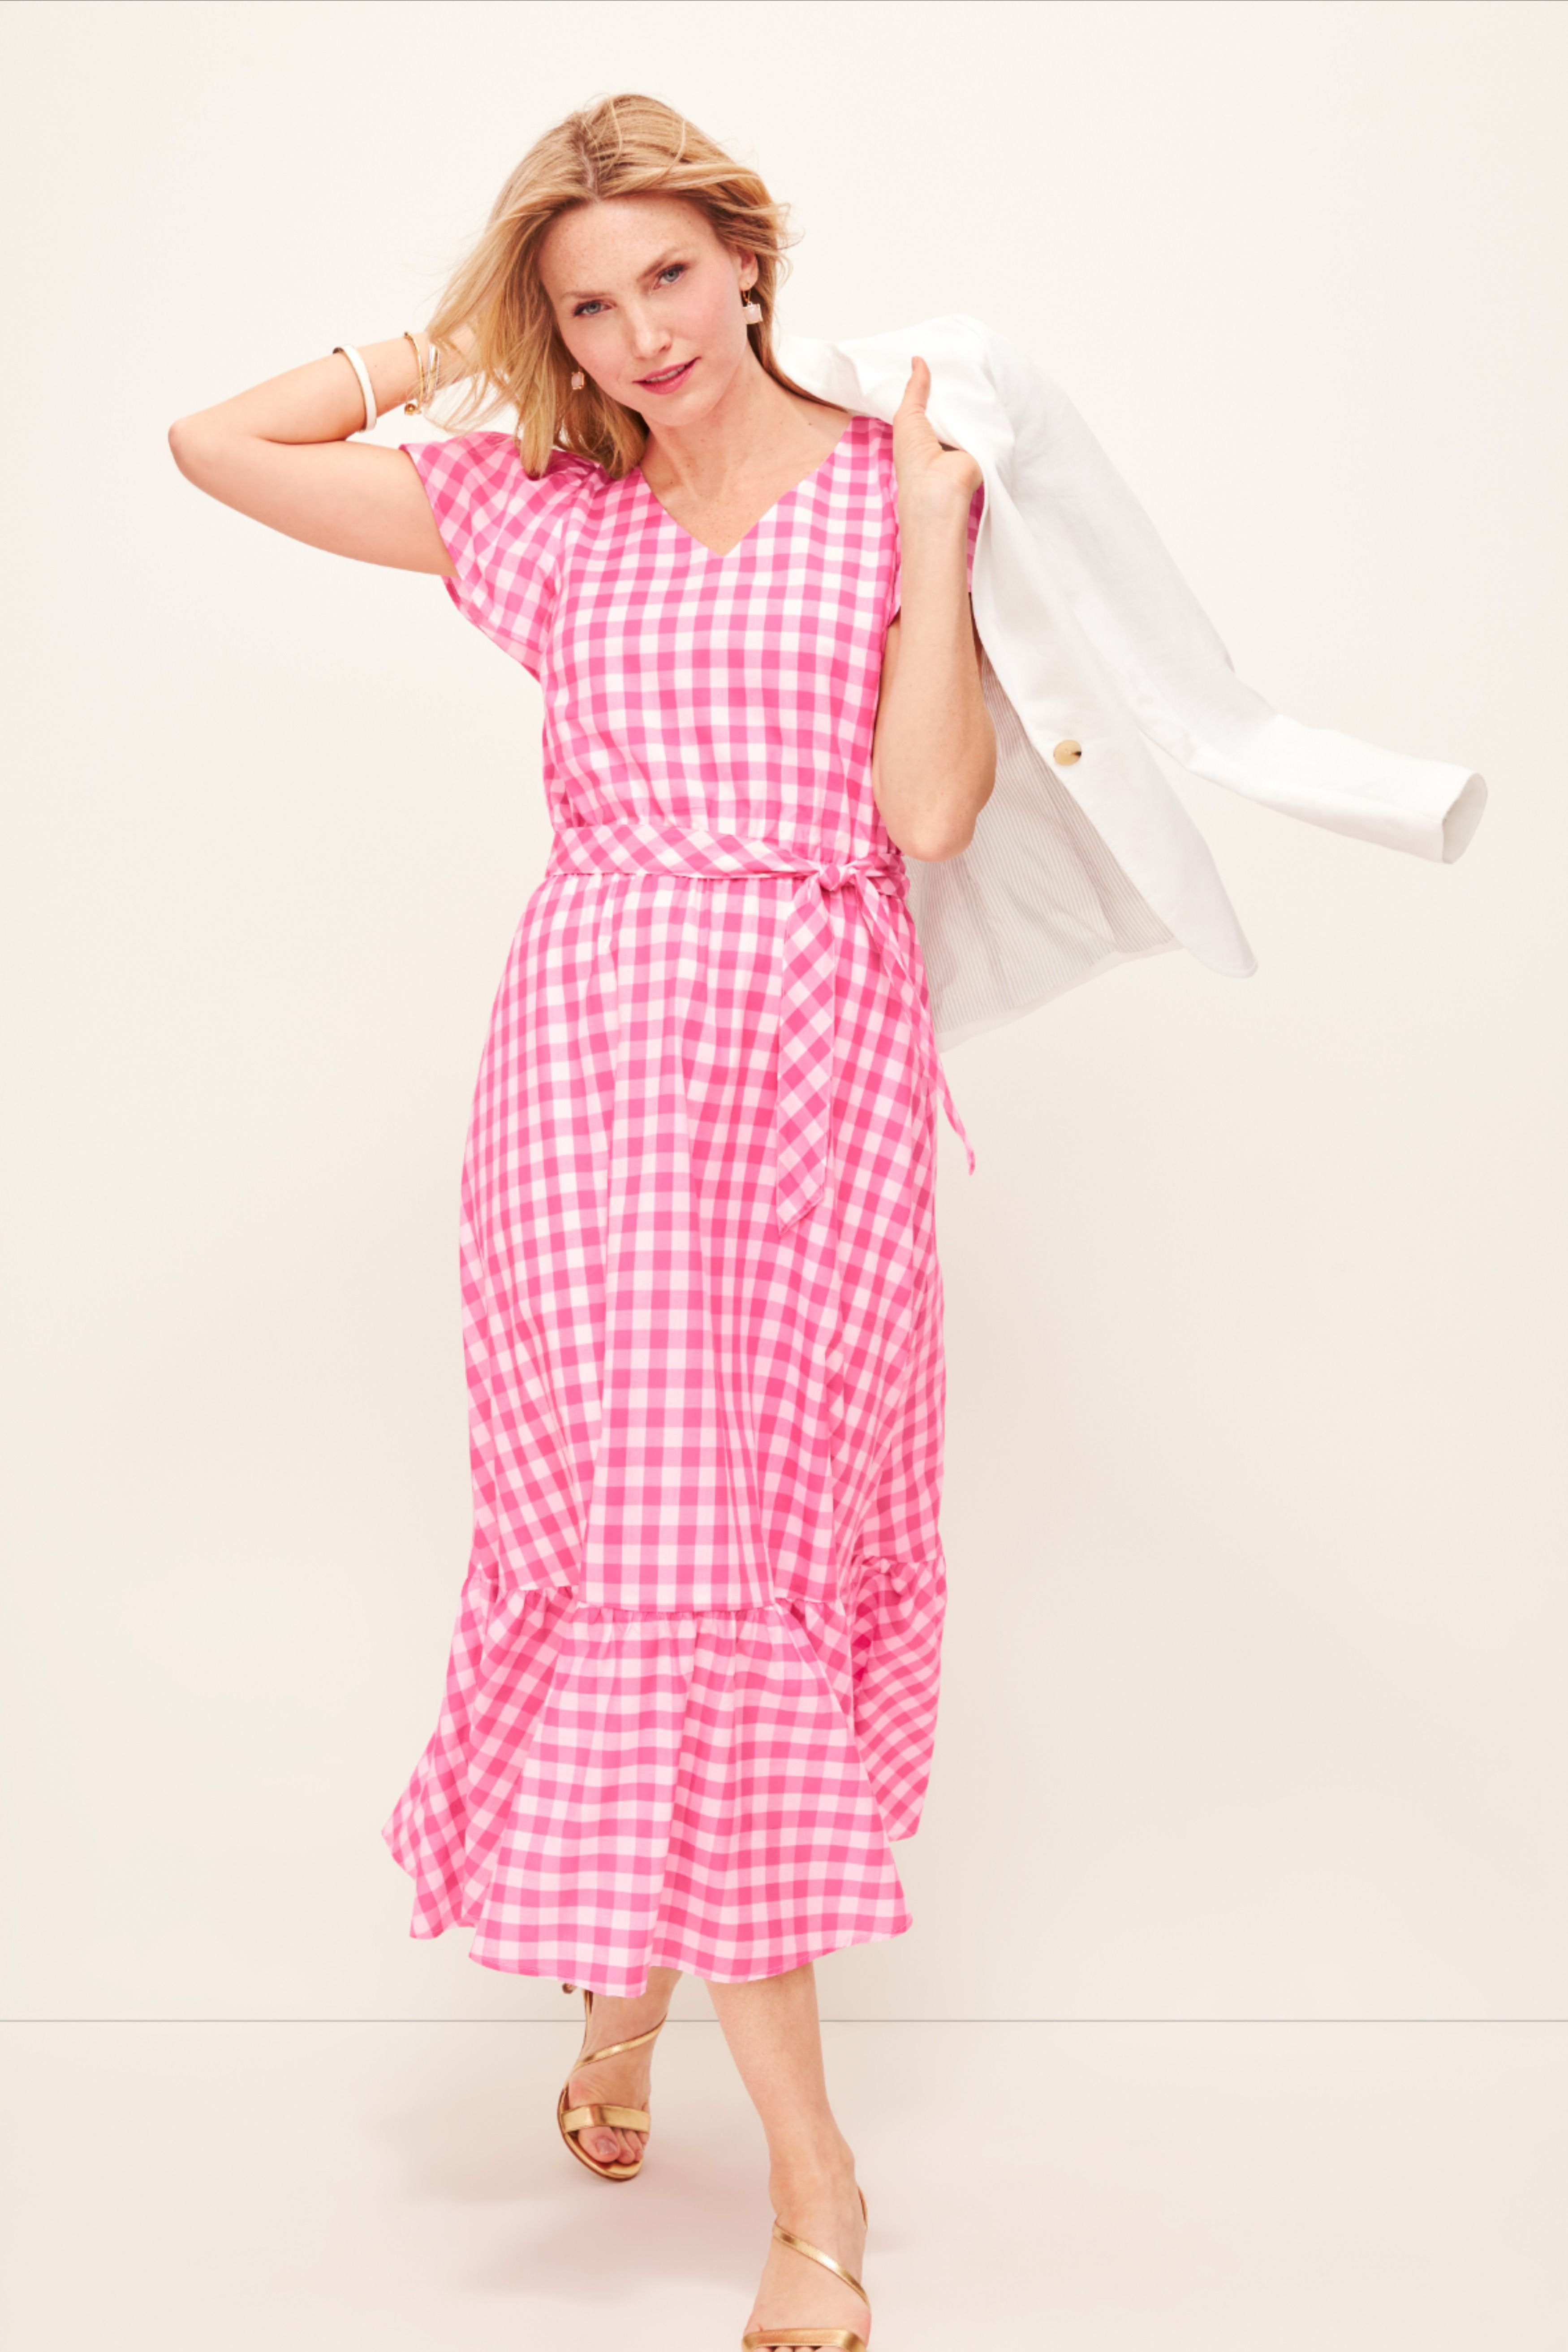 Of The Moment Simple And Elegant Talbots Spring Outfits Spring Outfits Talbots Dress Clothes [ 5249 x 3500 Pixel ]